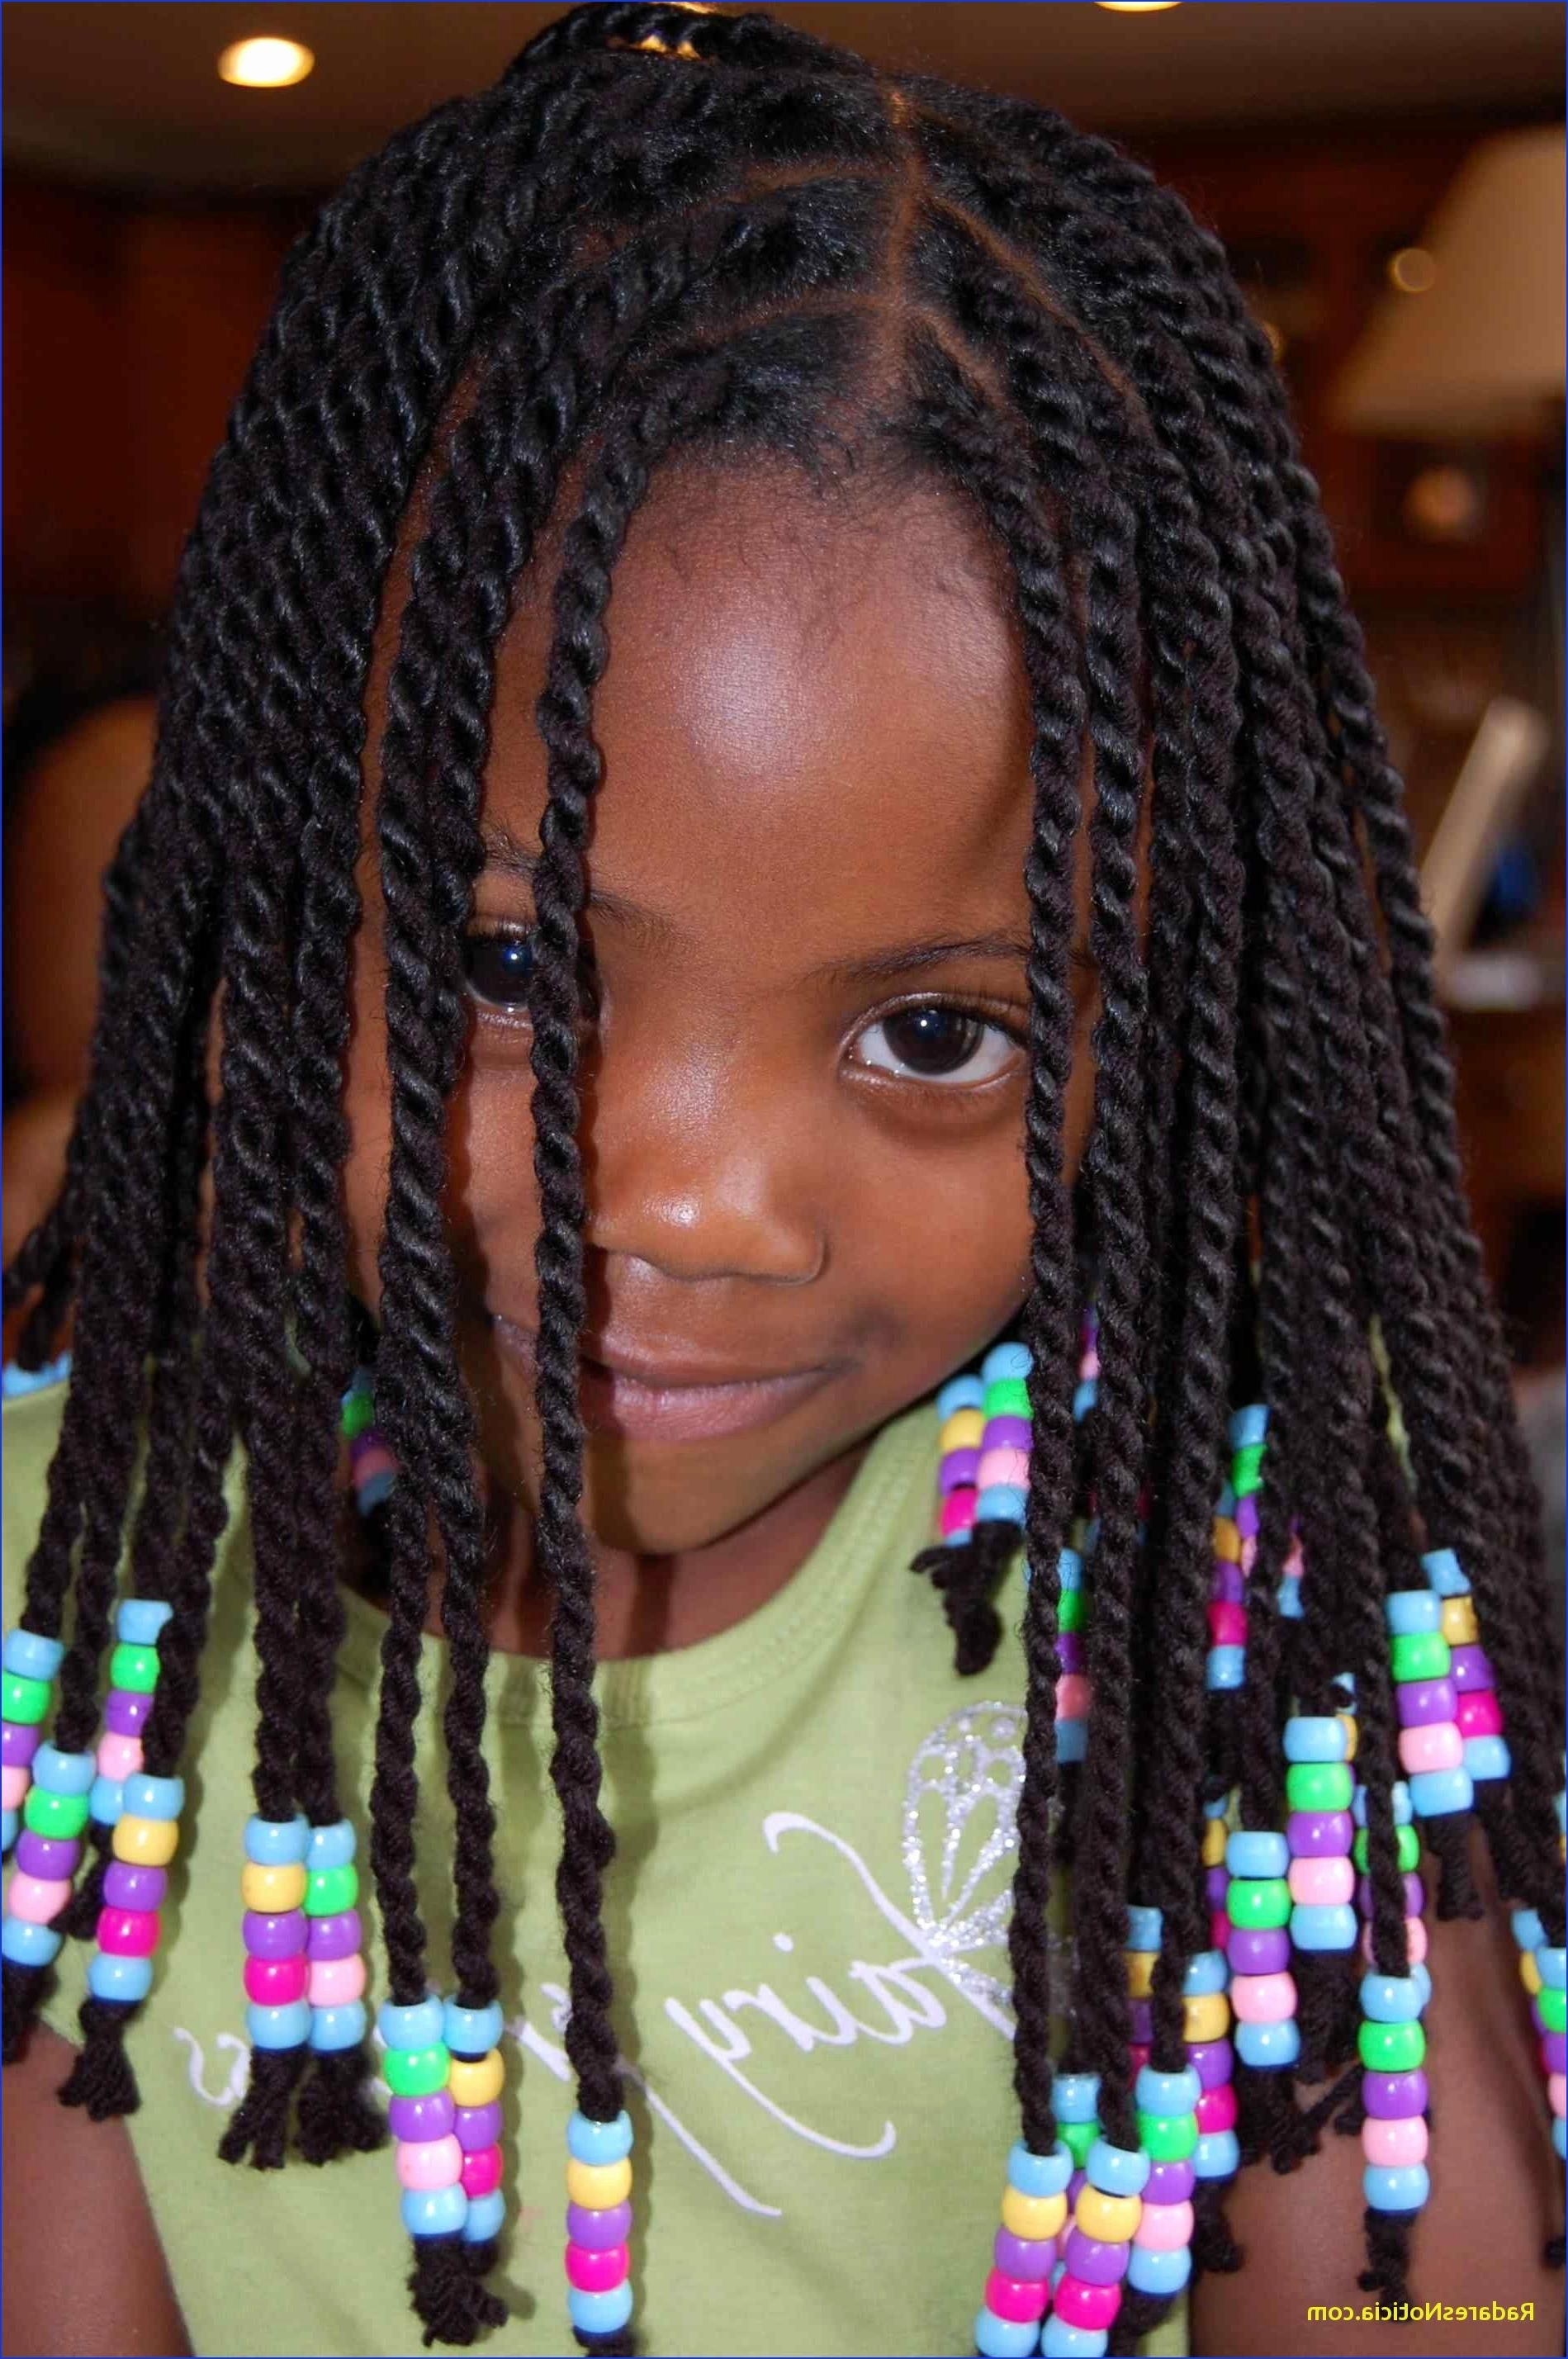 Widely Used Long Braided Ponytail Hairstyles Within Braided Ponytail Hairstyles For Black Hair Fresh Black Children (View 18 of 20)